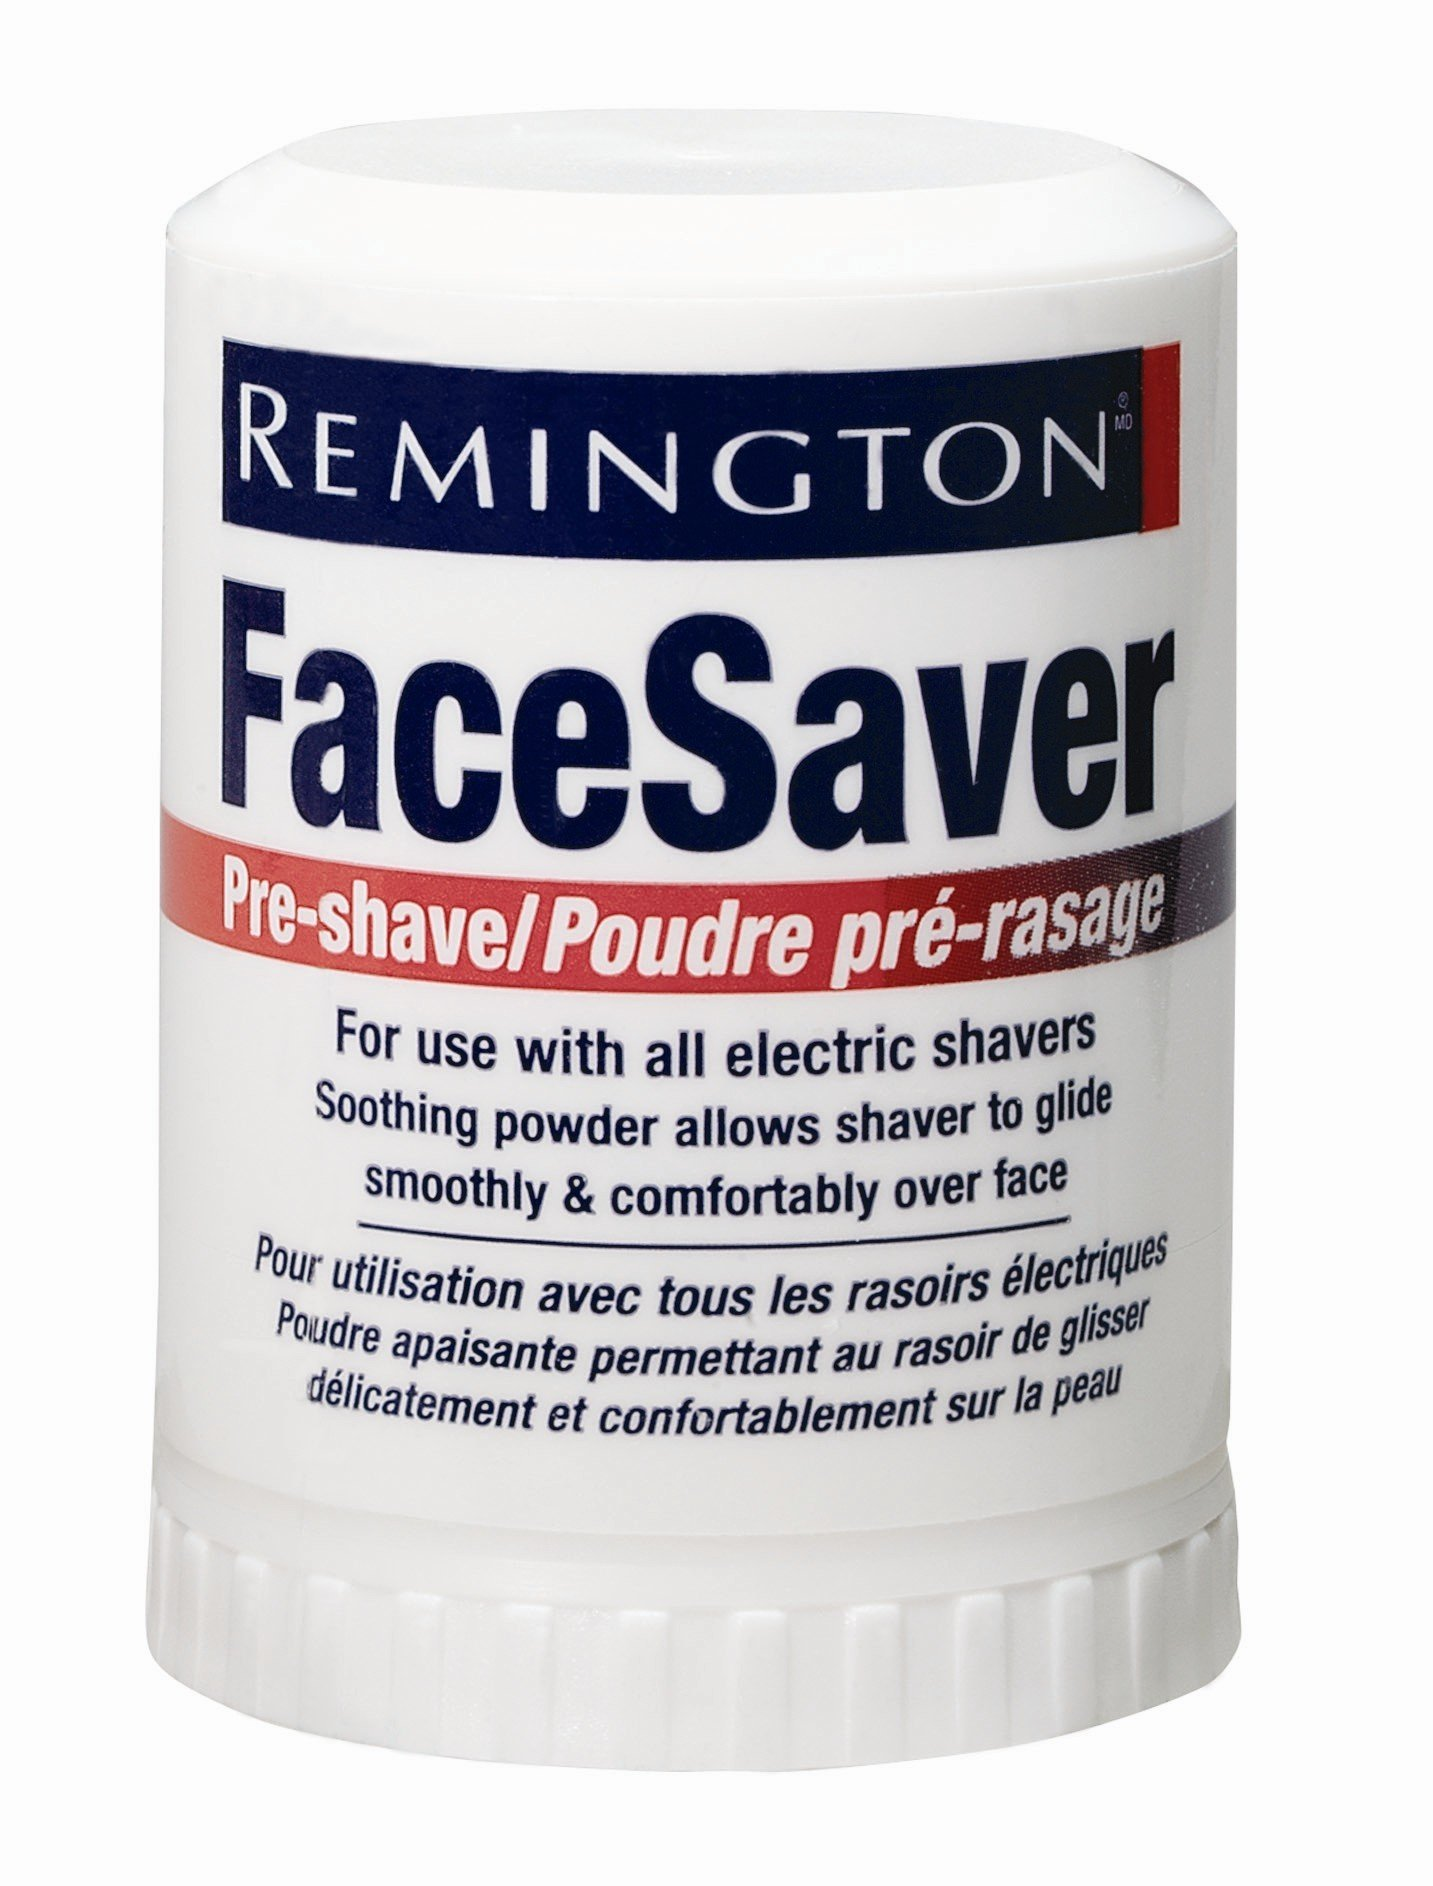 Remington SP-5 Pre-Shave Talc Stick Face Saver For all Mens Shavers, Net Weight. 2.1 Ounce/ 60 g (Pack of 6) (Renewed) by Remington